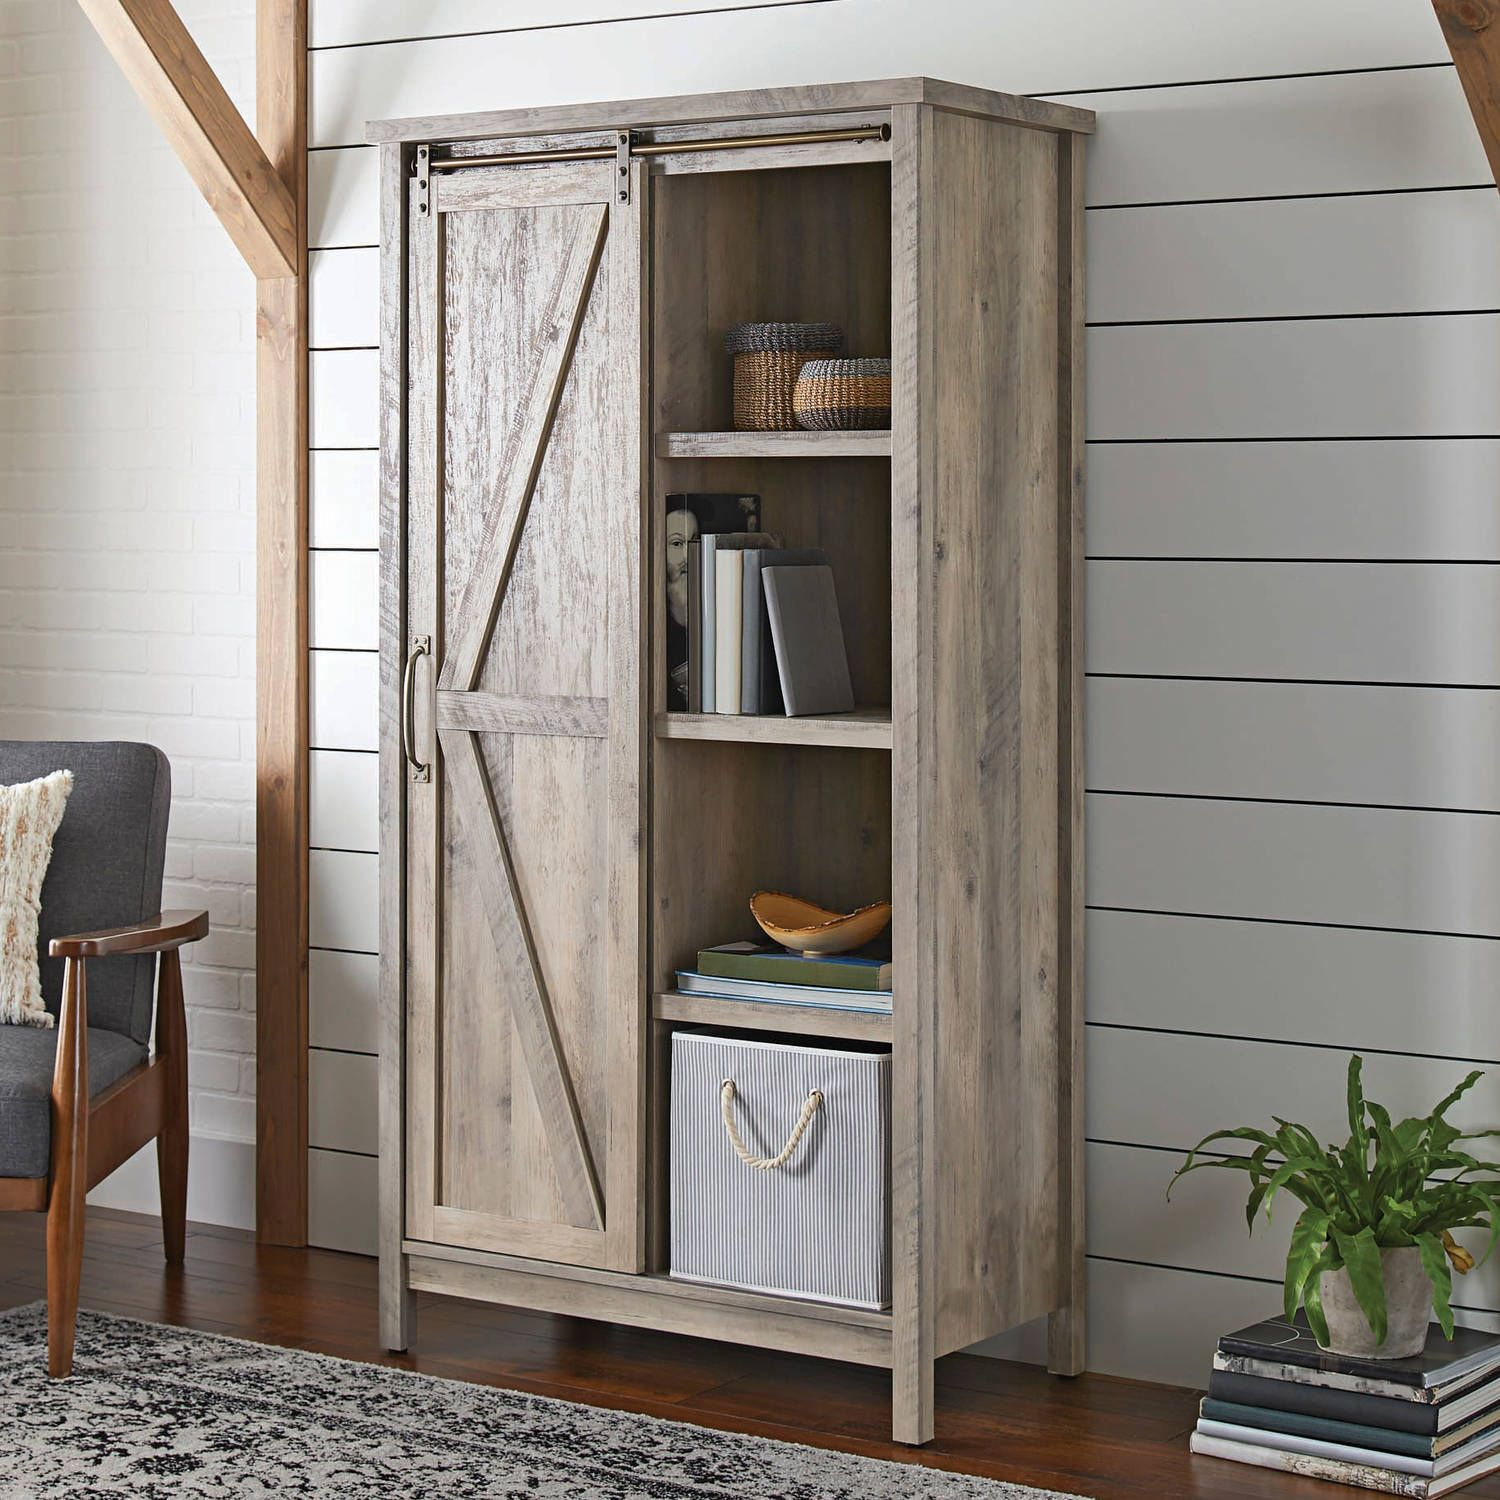 ec8505d518e1231100966a12d8da41ae - Better Homes And Gardens Barn Door Cabinet